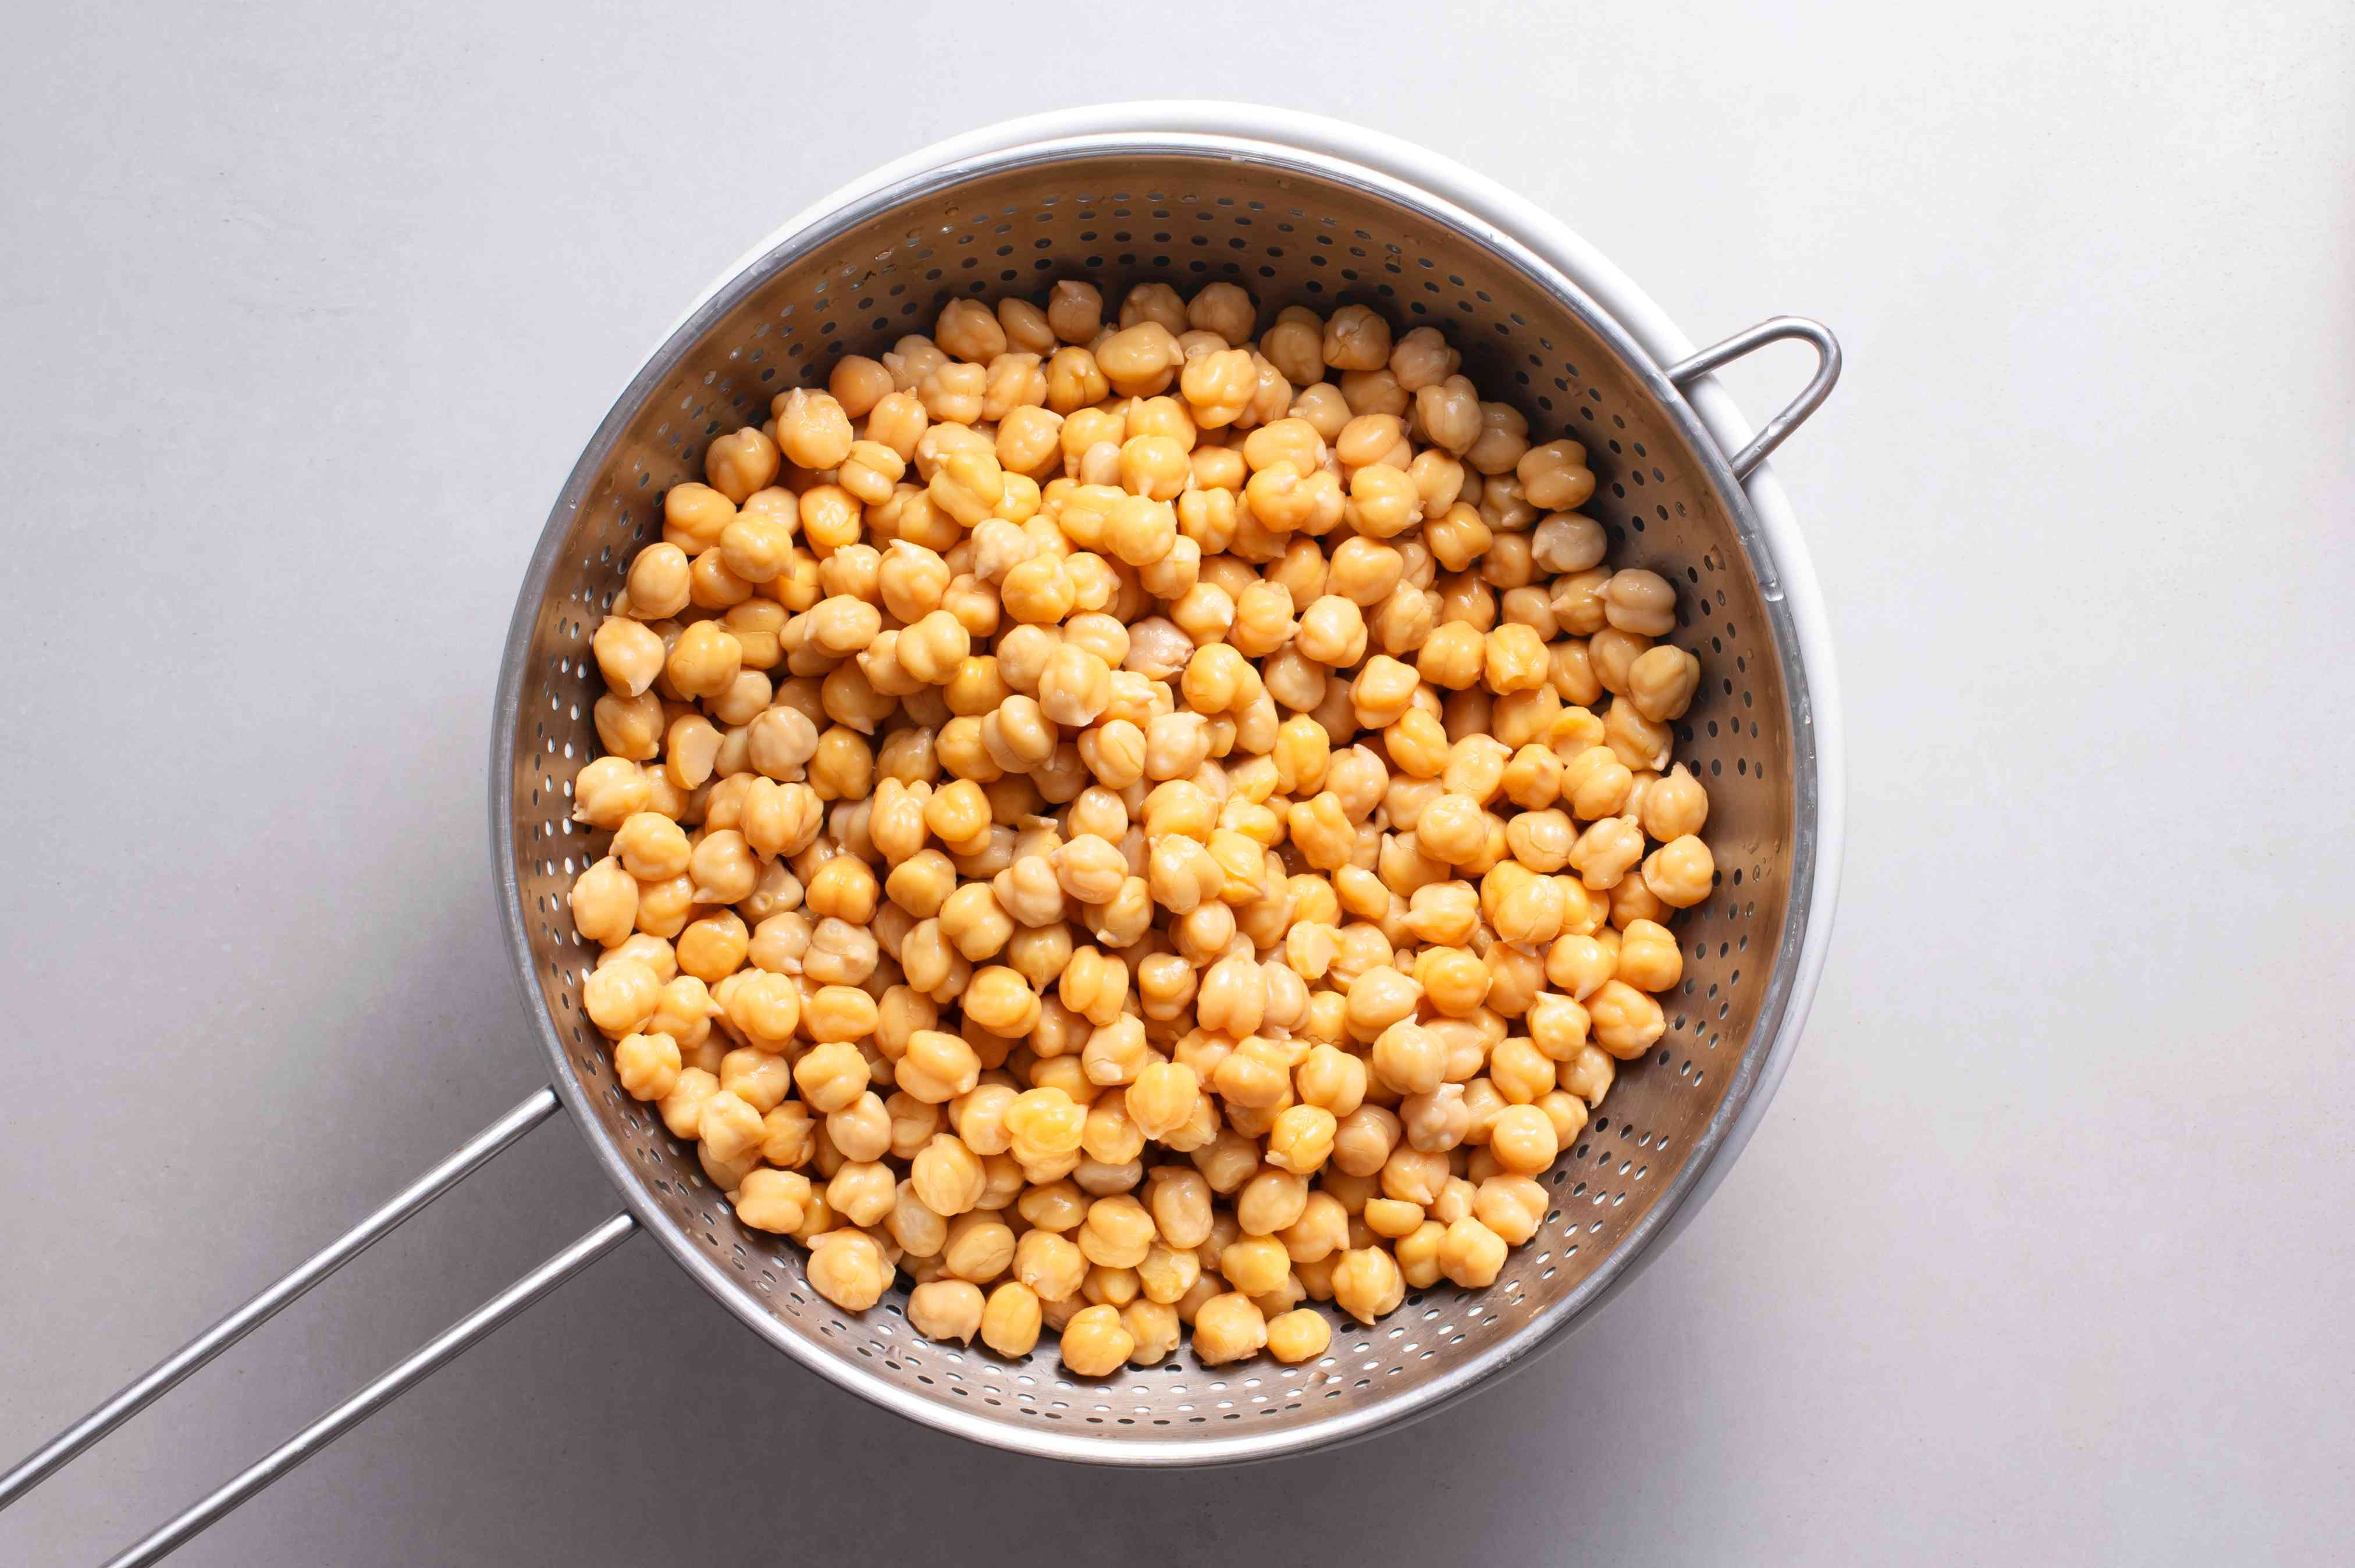 Drain and rinse the chickpeas